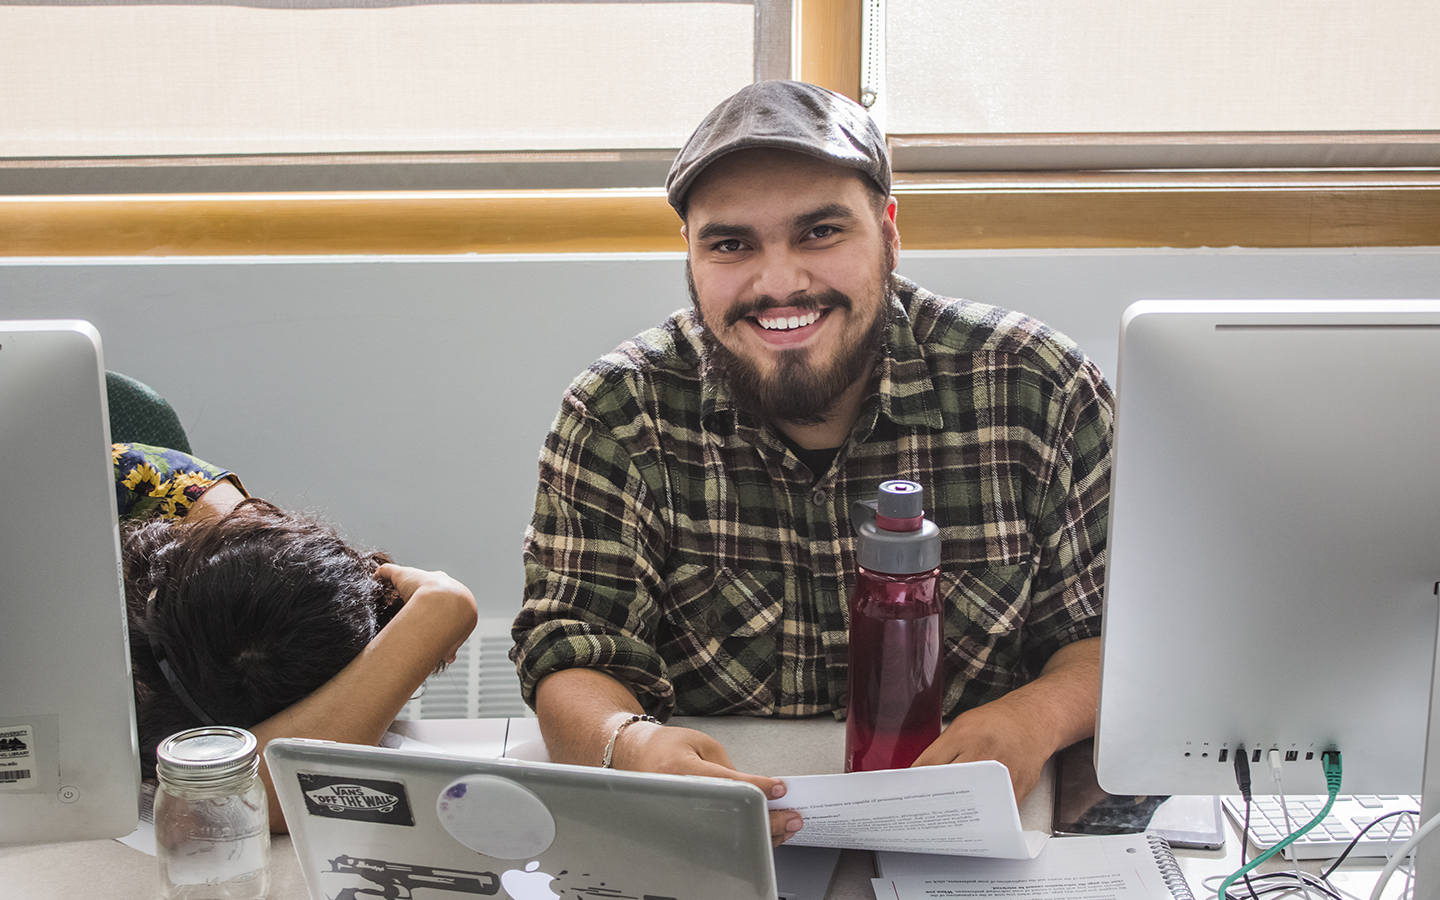 Student at a laptop